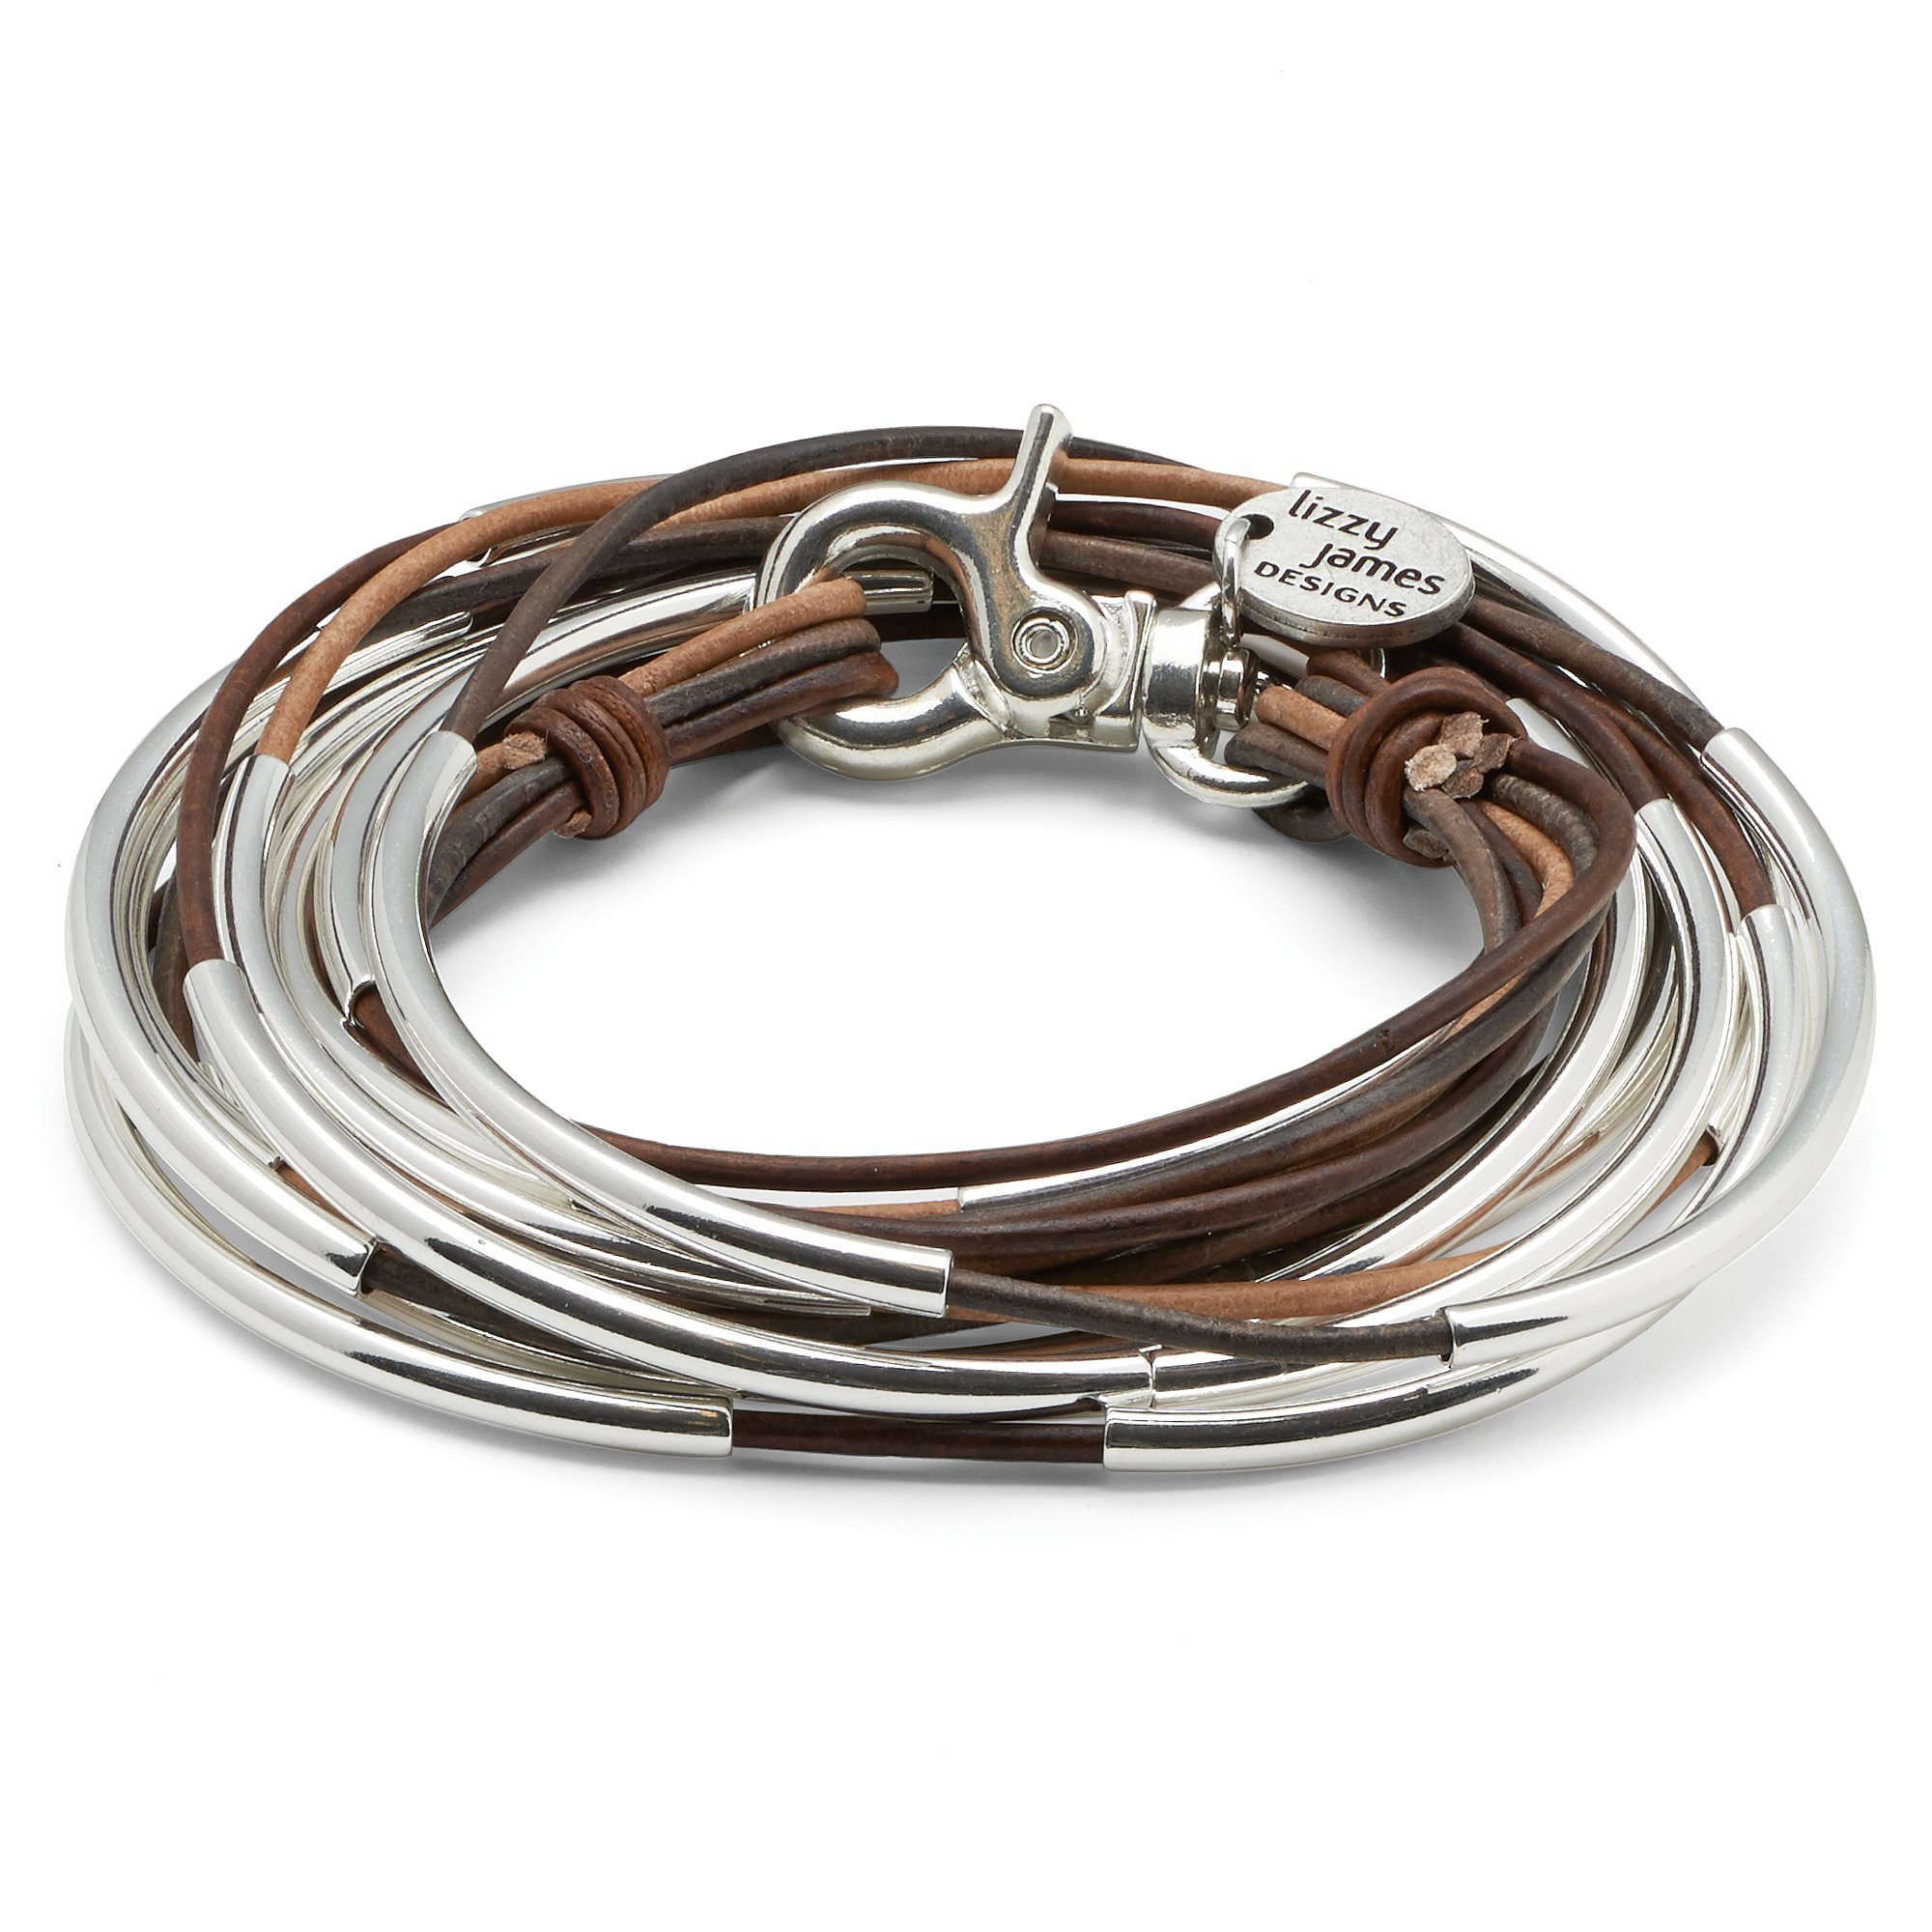 Lizzy Too 5 Strand Brown Silverplate XLarge Bracelet Necklace with Tricolor Brown Leather Wrap by Lizzy James